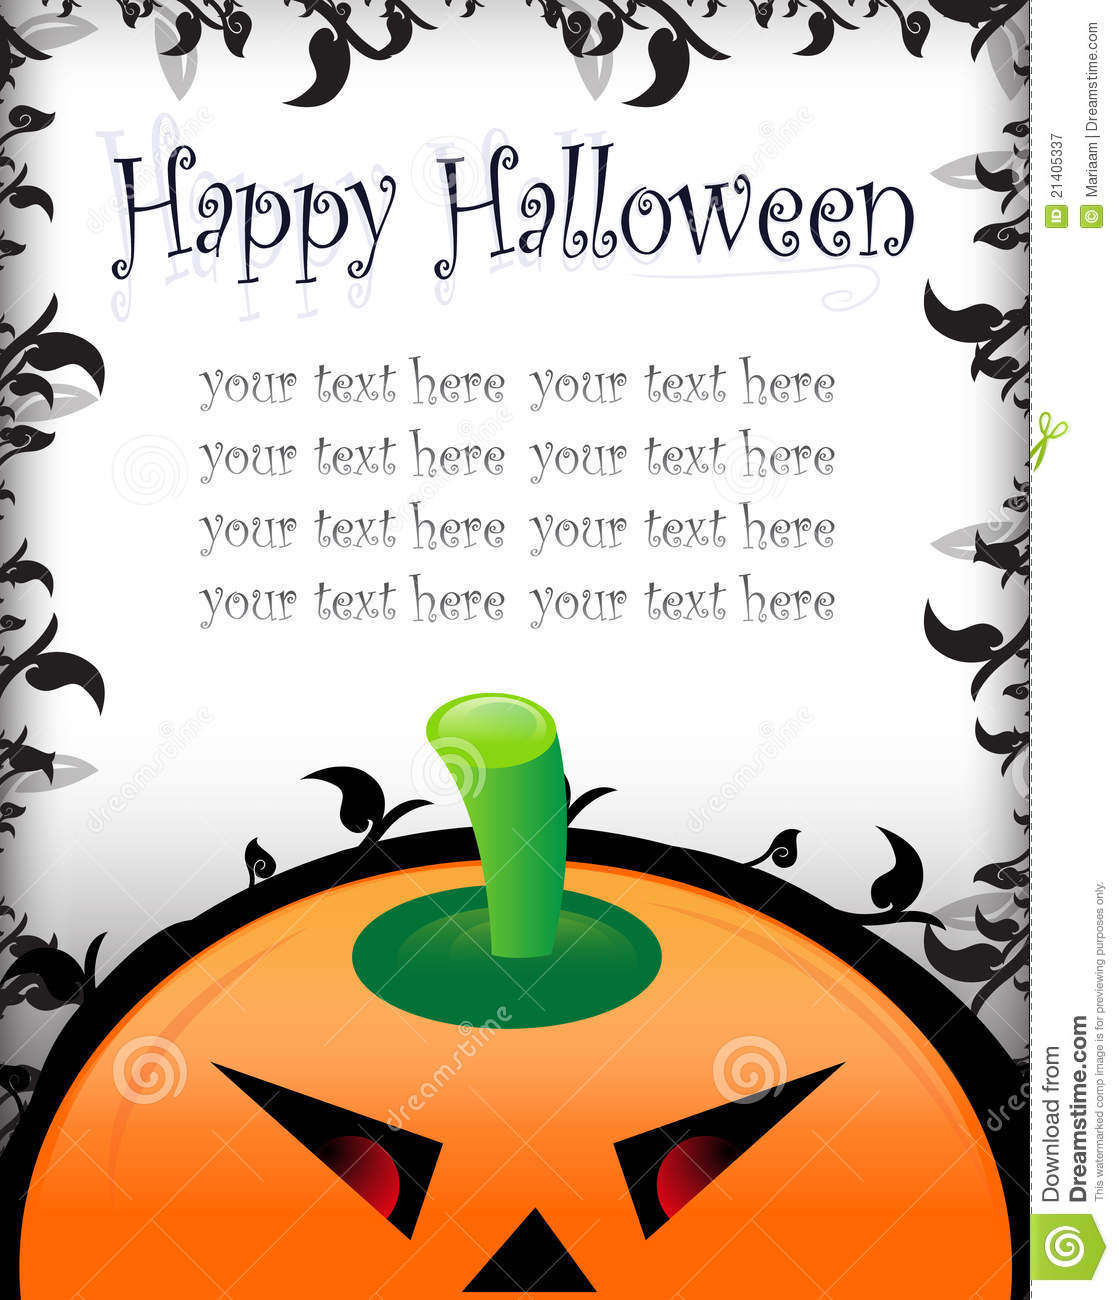 Halloween greetinginvitation card stock illustration halloween greetinginvitation card kristyandbryce Images